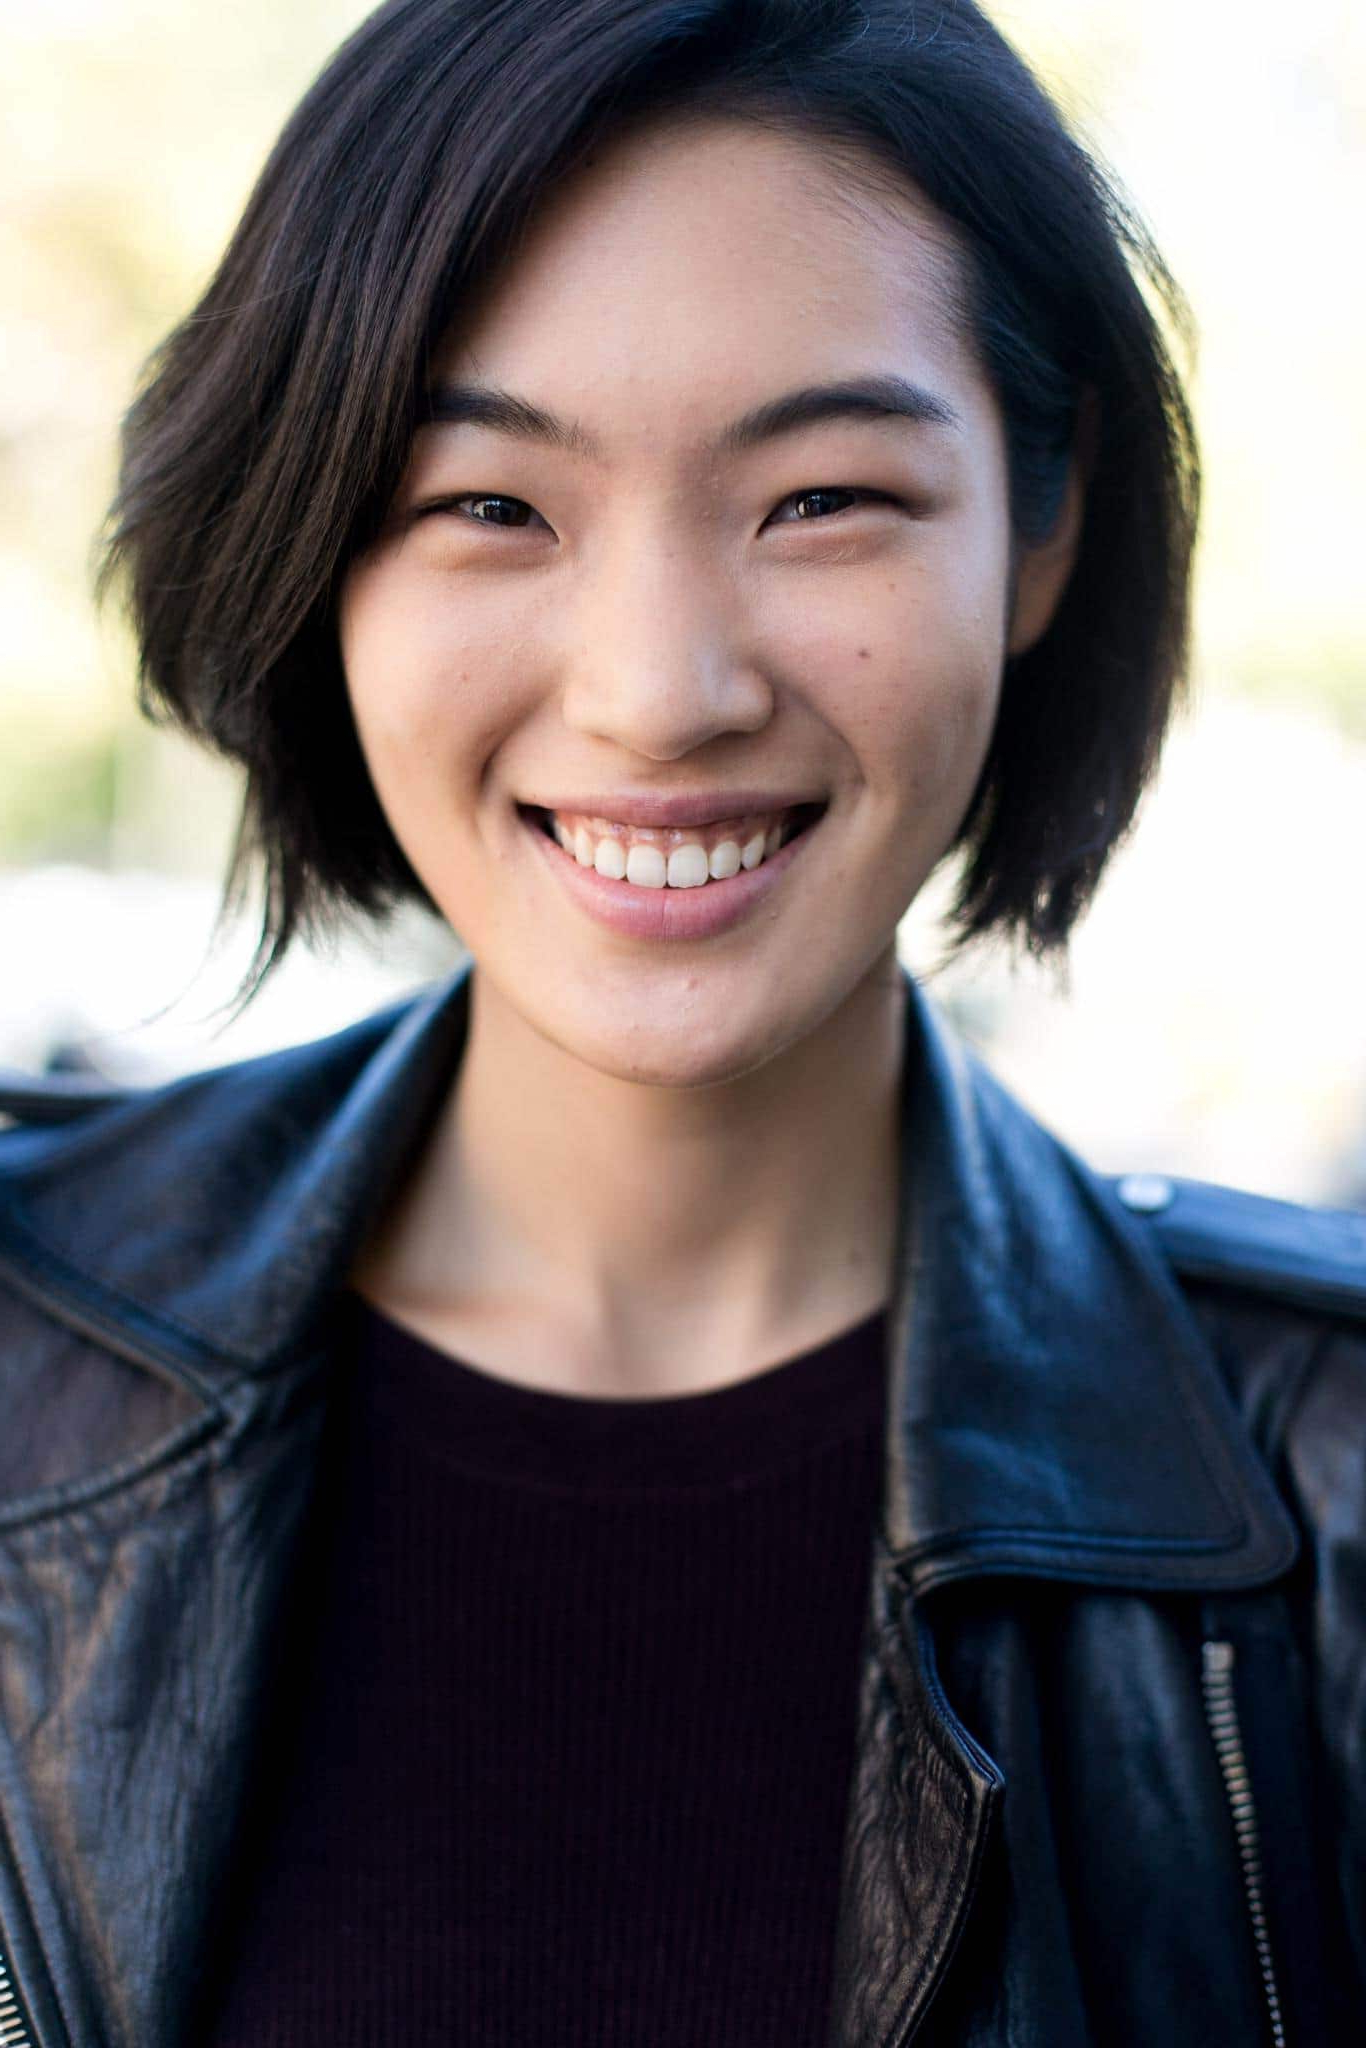 16 Short Asian Hairstyles That Are Trending In 2019 Throughout Recent Boyish Shag Asian Hairstyles (Gallery 7 of 20)